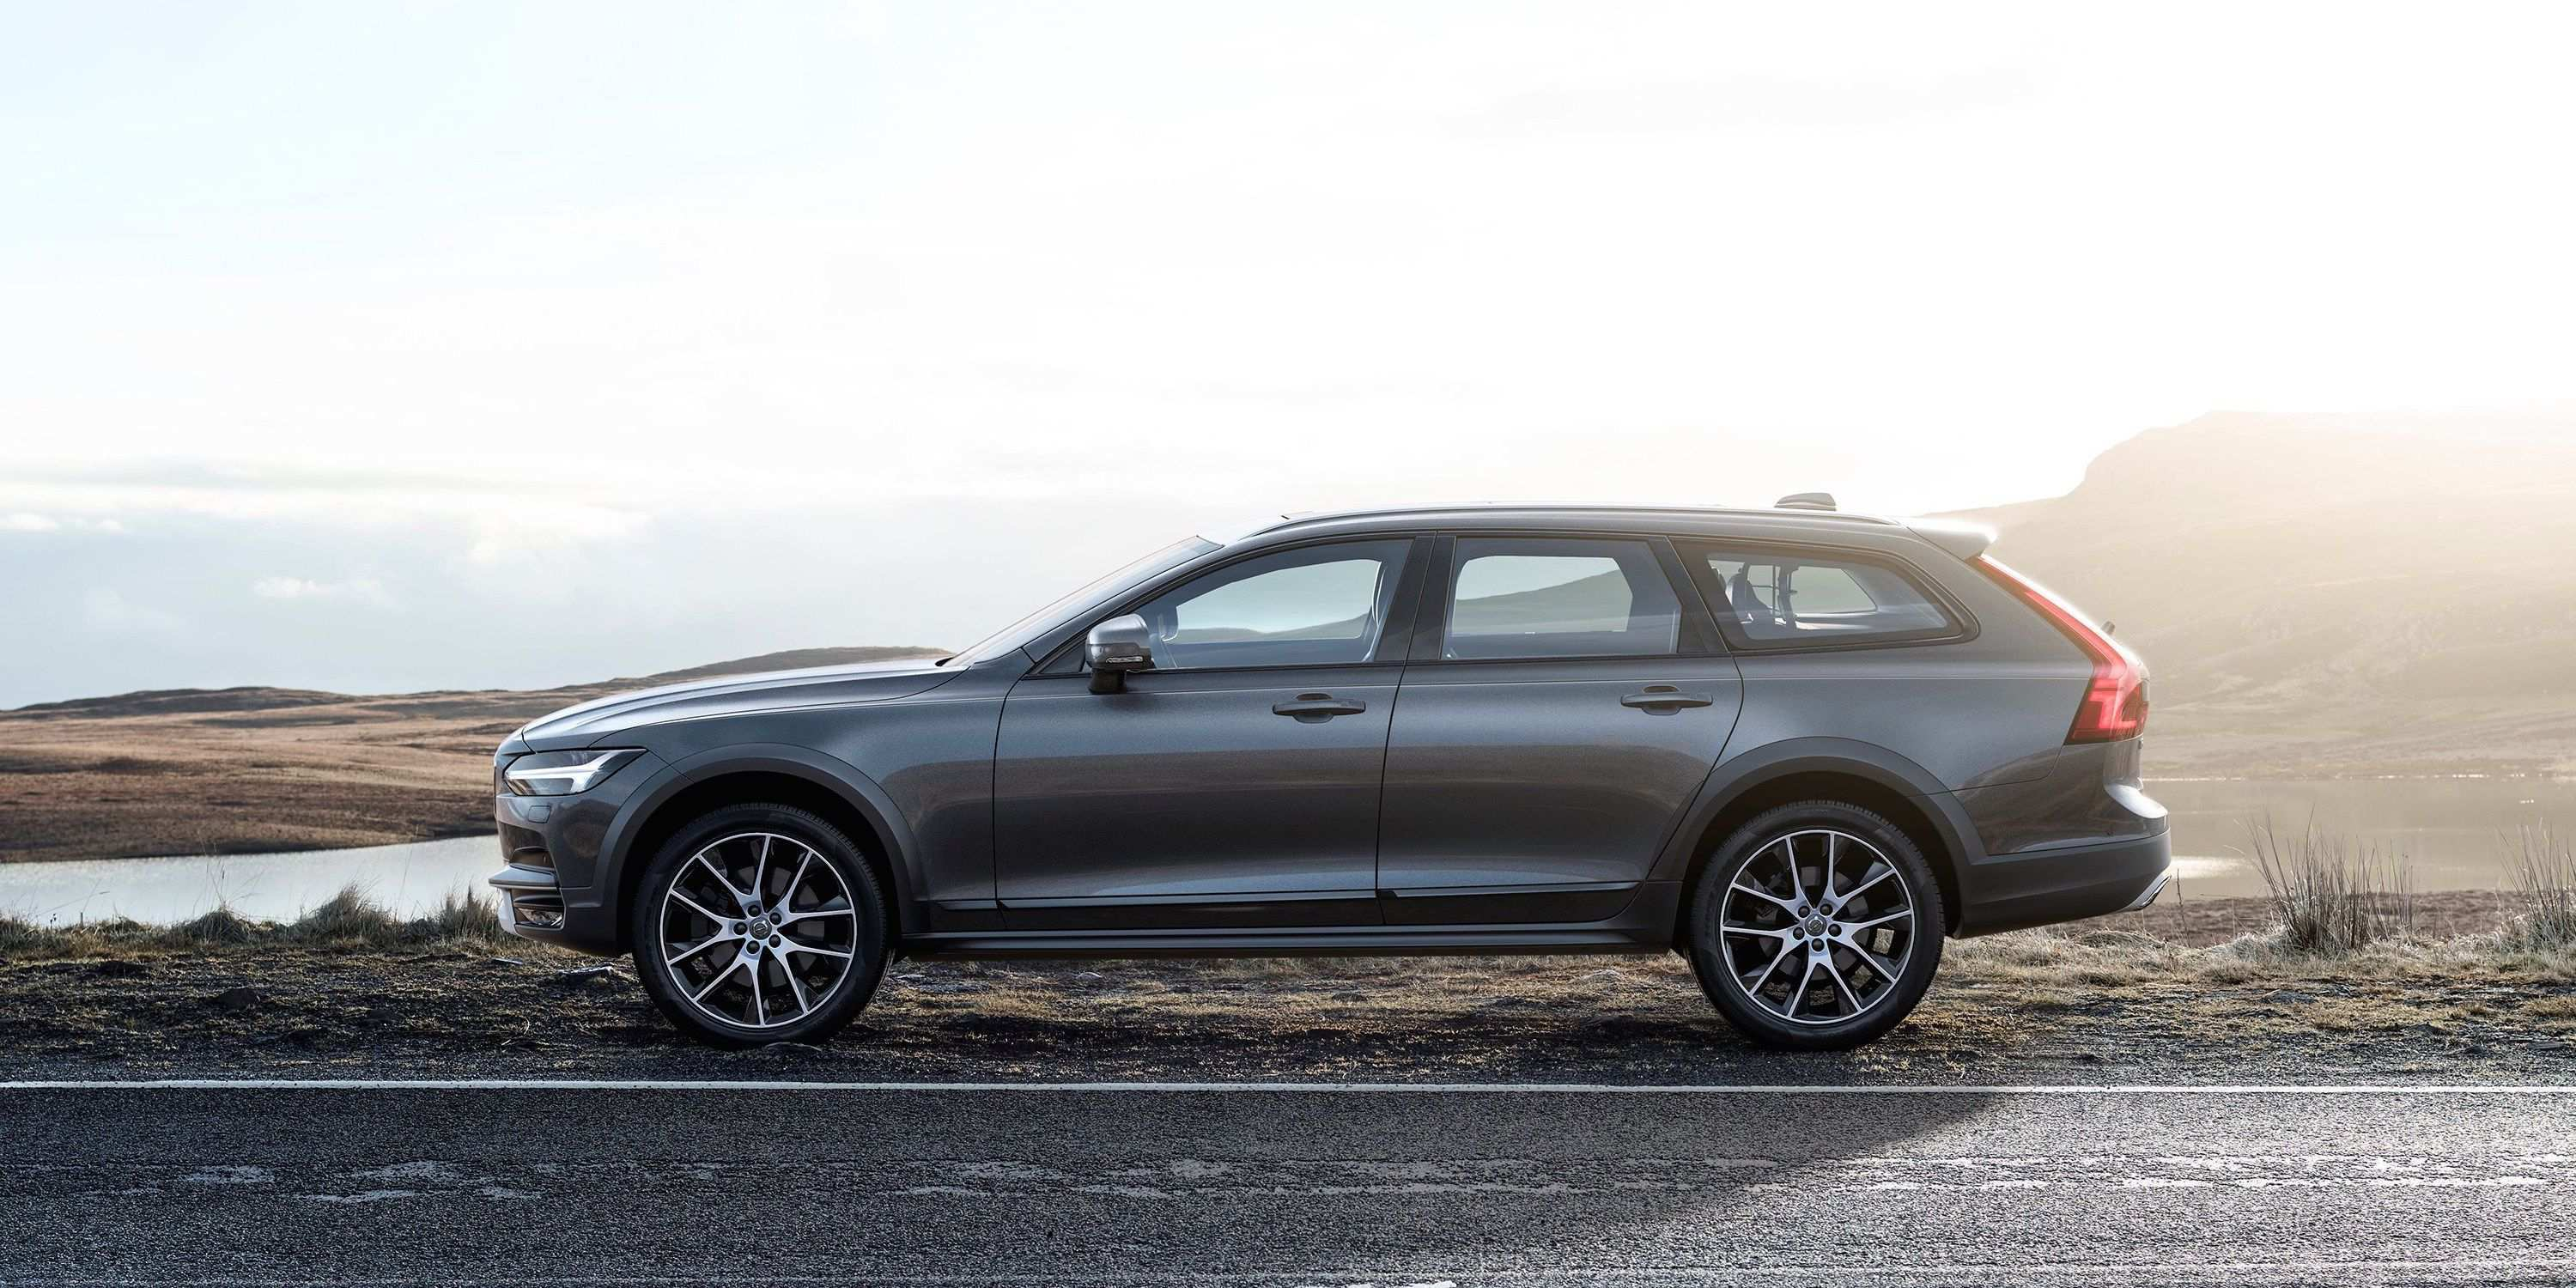 50 All New 2020 Volvo Xc70 New Generation Wagon Speed Test by 2020 Volvo Xc70 New Generation Wagon